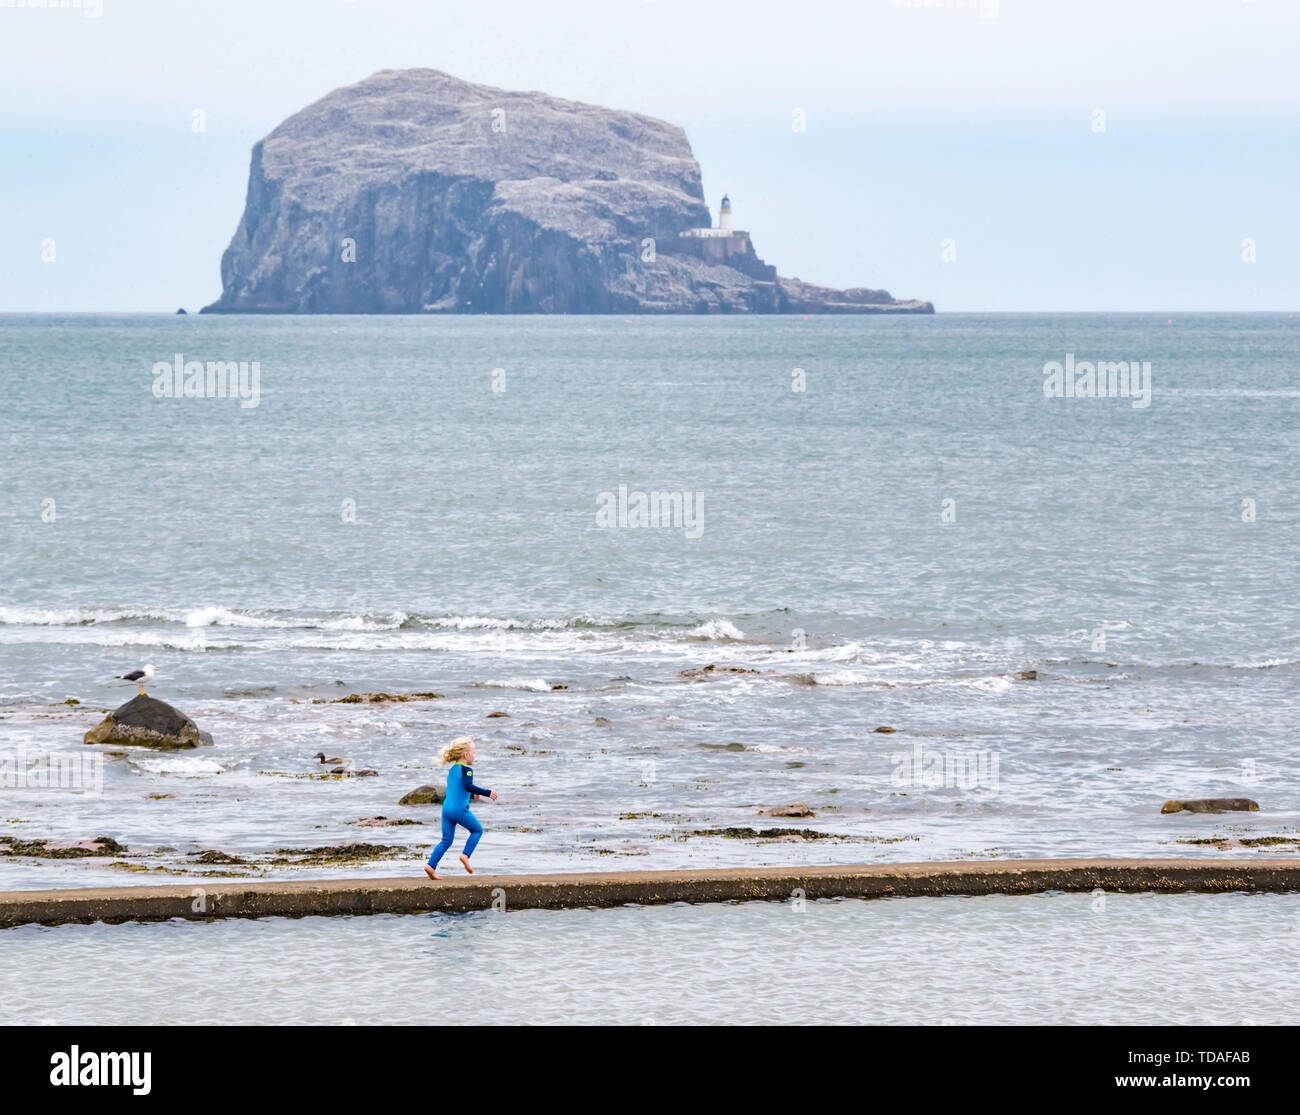 North Berwick, East Lothian, Scotland, United Kingdom, 14th June 2019. UK Westher: After East Lothian suffered heavy rain the last few days, the weather has brightened, and people enjoy the outdoor pursuits in the seaside town. A young girl enjoys running on rim of  the tidal bathing pool at Milsey Bay. Credit: Sally Anderson/Alamy Live News - Stock Image